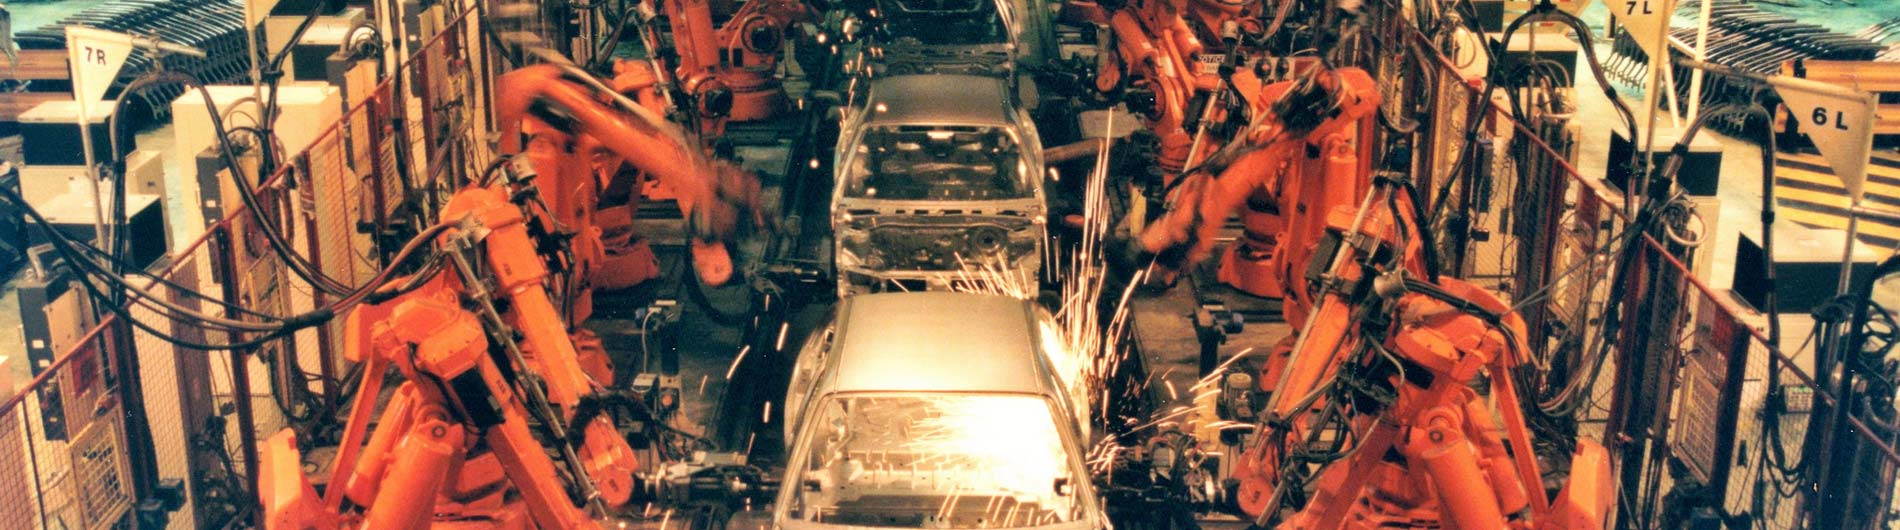 Third industrial revolution to cause a deflation outbreak